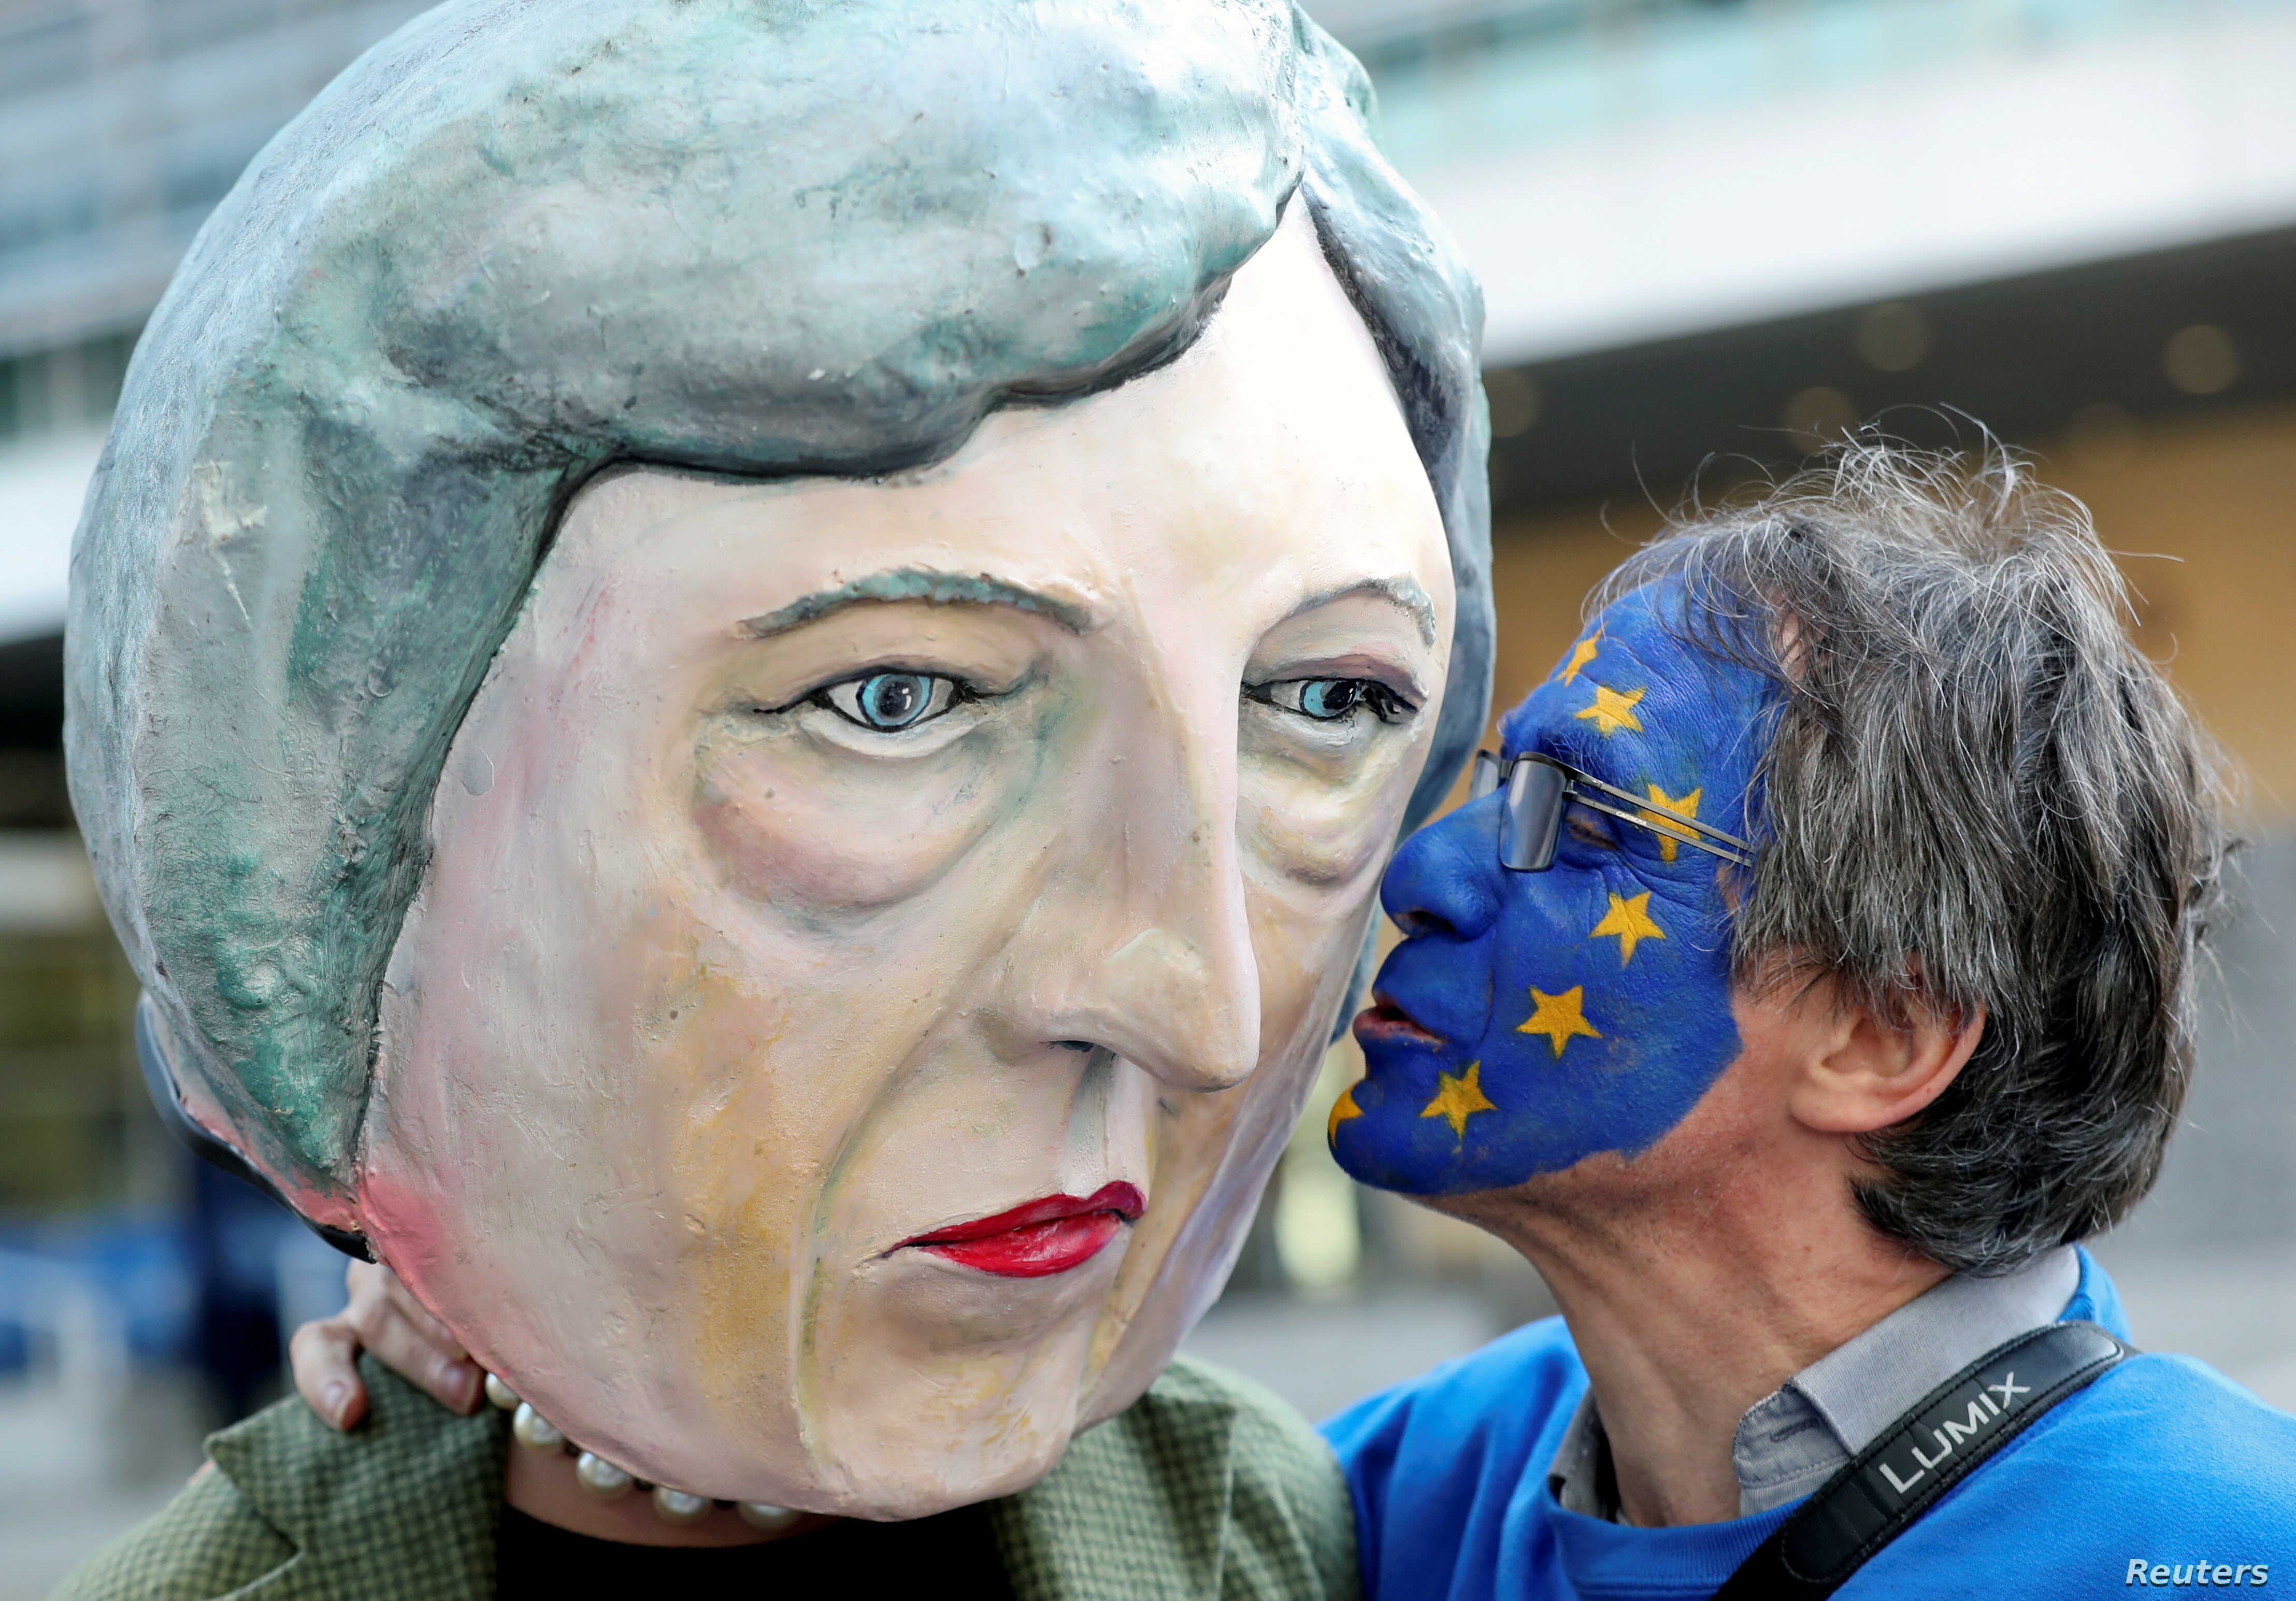 An anti-Brexit demonstrator kisses a protester dressed as Britain's Prime Minister Theresa May ahead of a EU Summit in Brussels, Belgium, March 21, 2019.